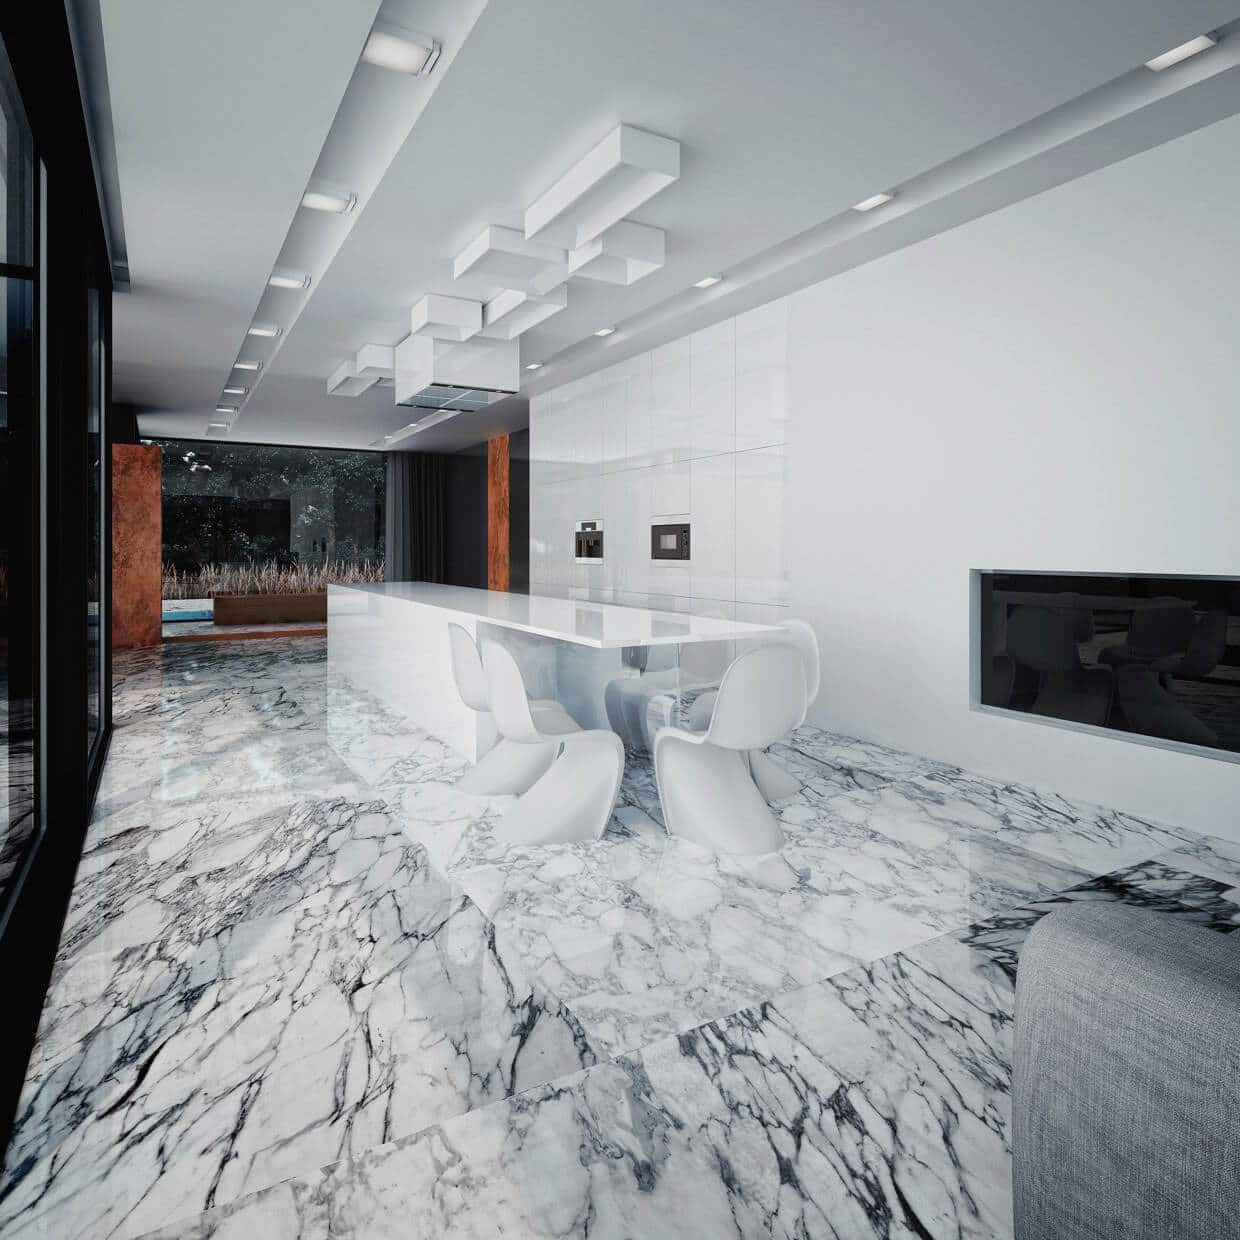 Miami Tile and Renovation | Bathroom, Stone Installers & Contractor